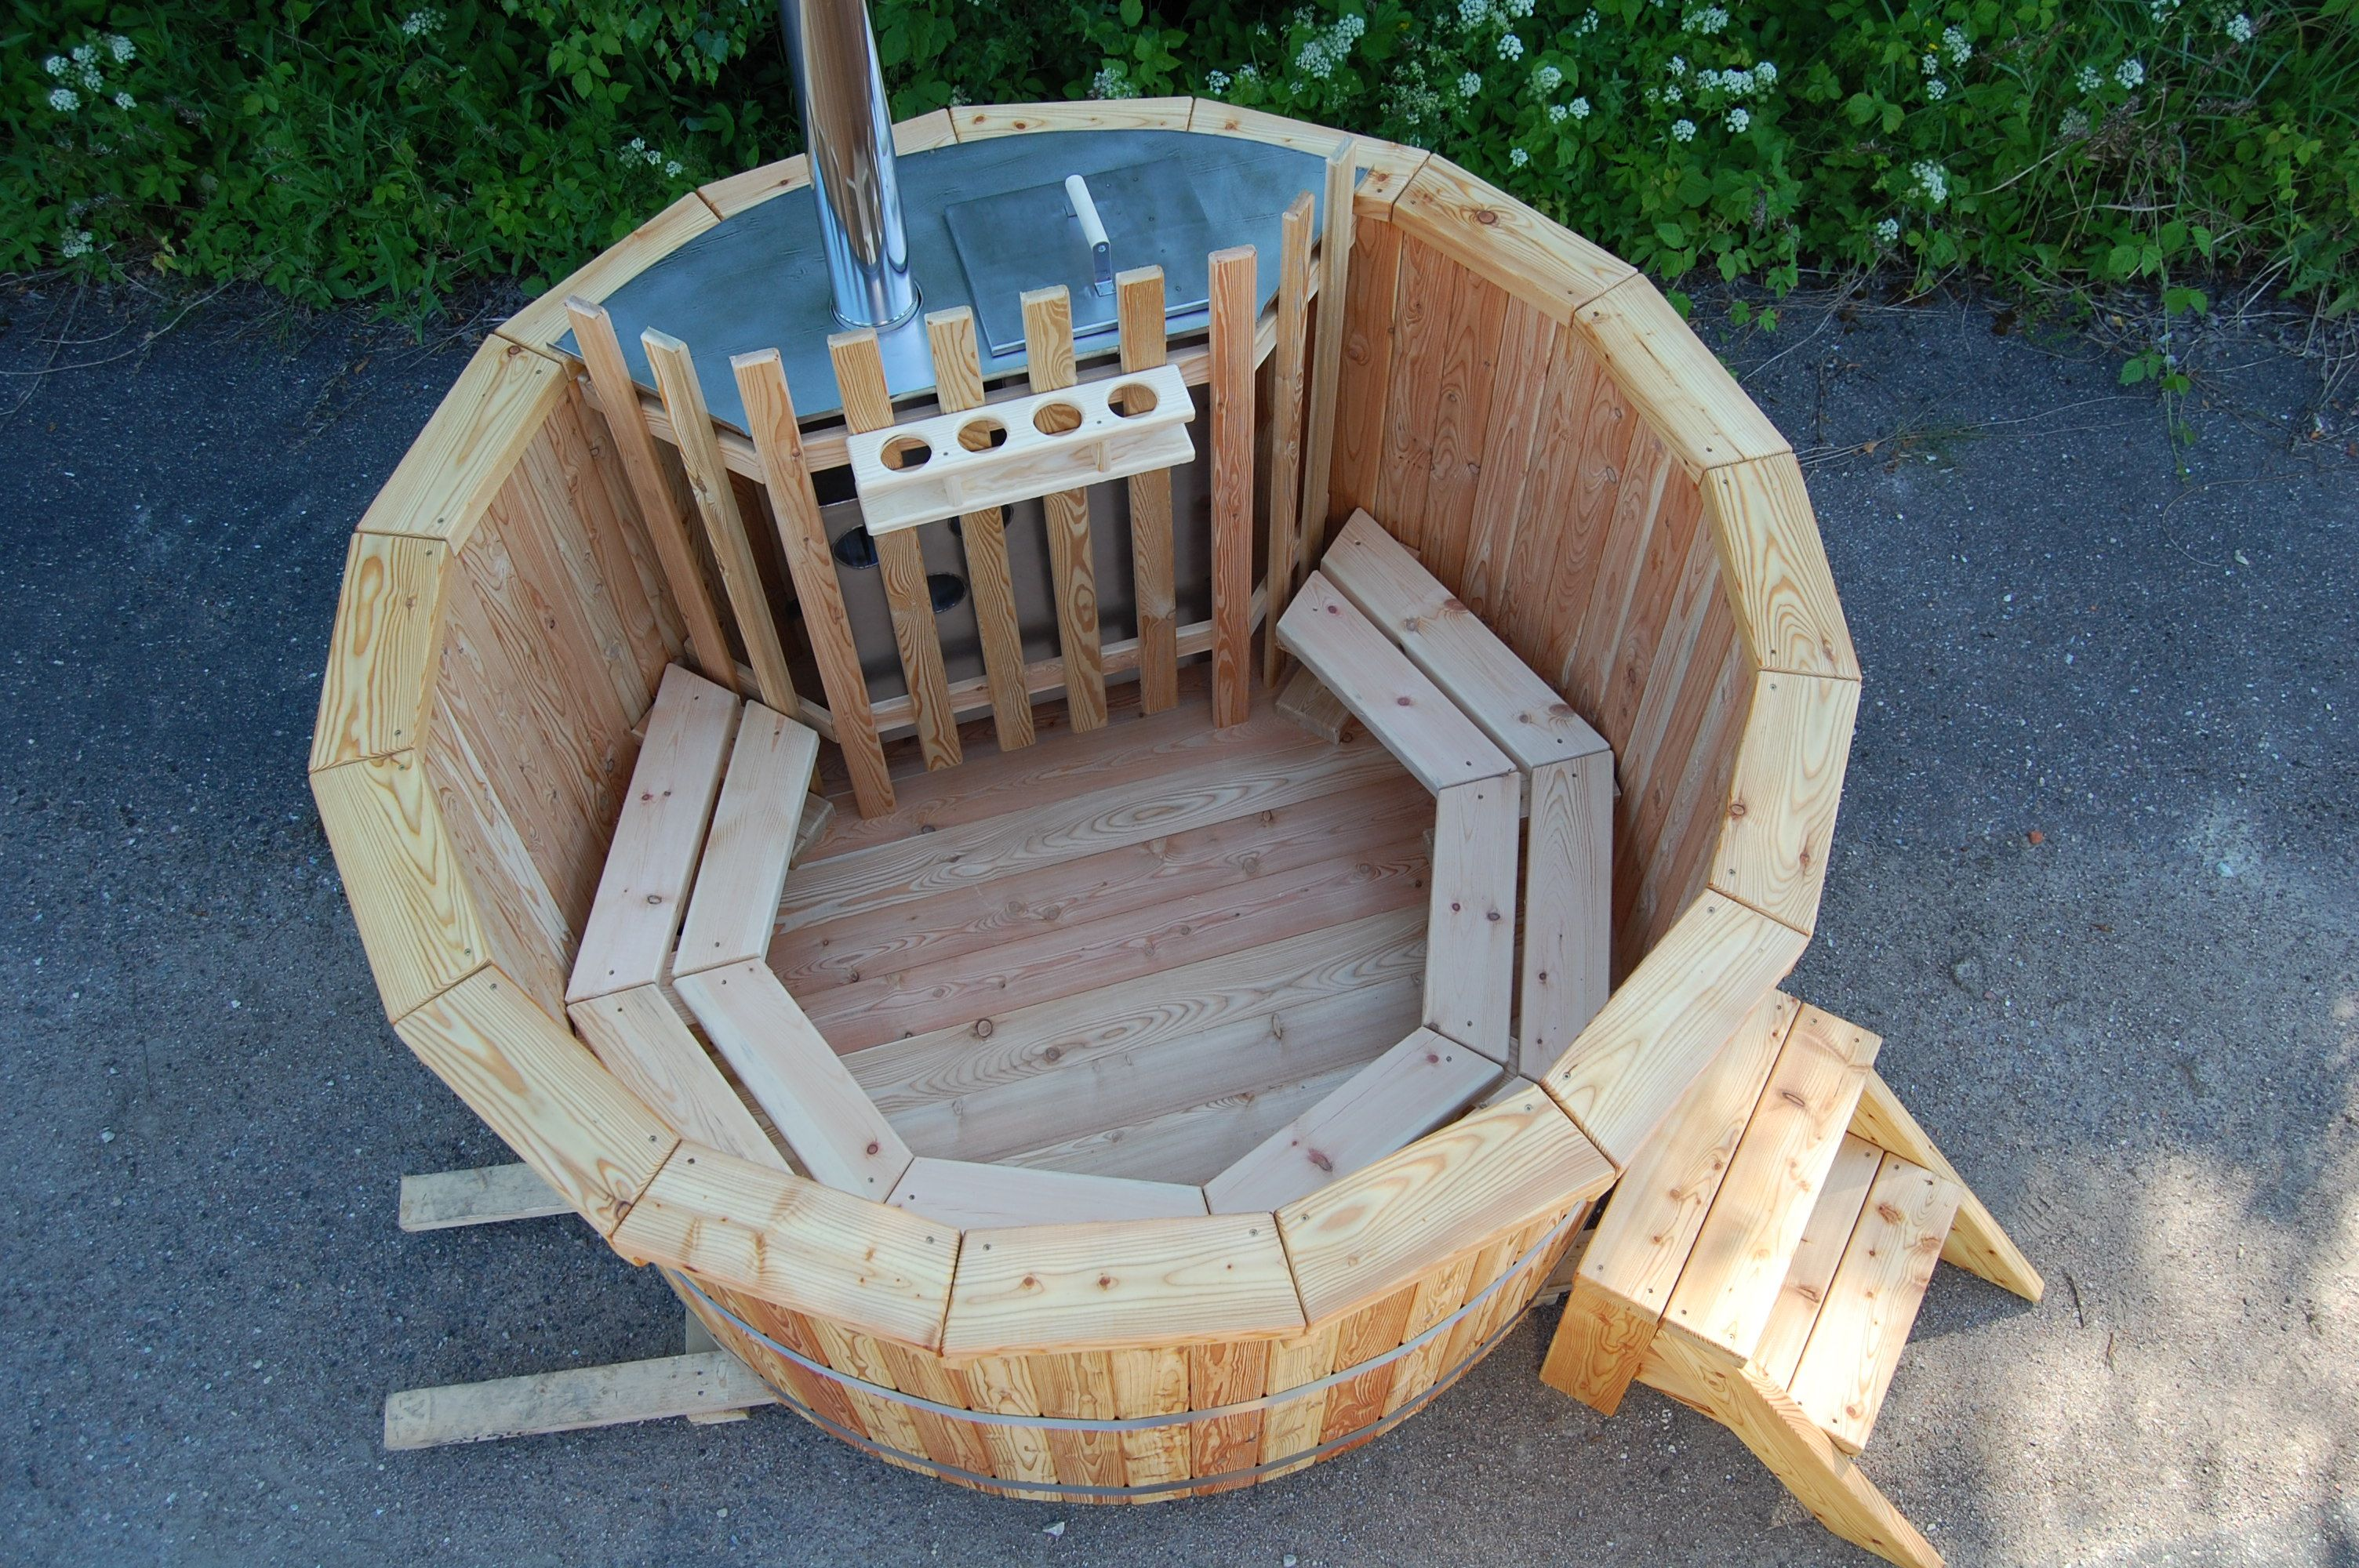 Deluxe Larch Hot Tub With Internal Heater #Wooden #Larch #Hottub